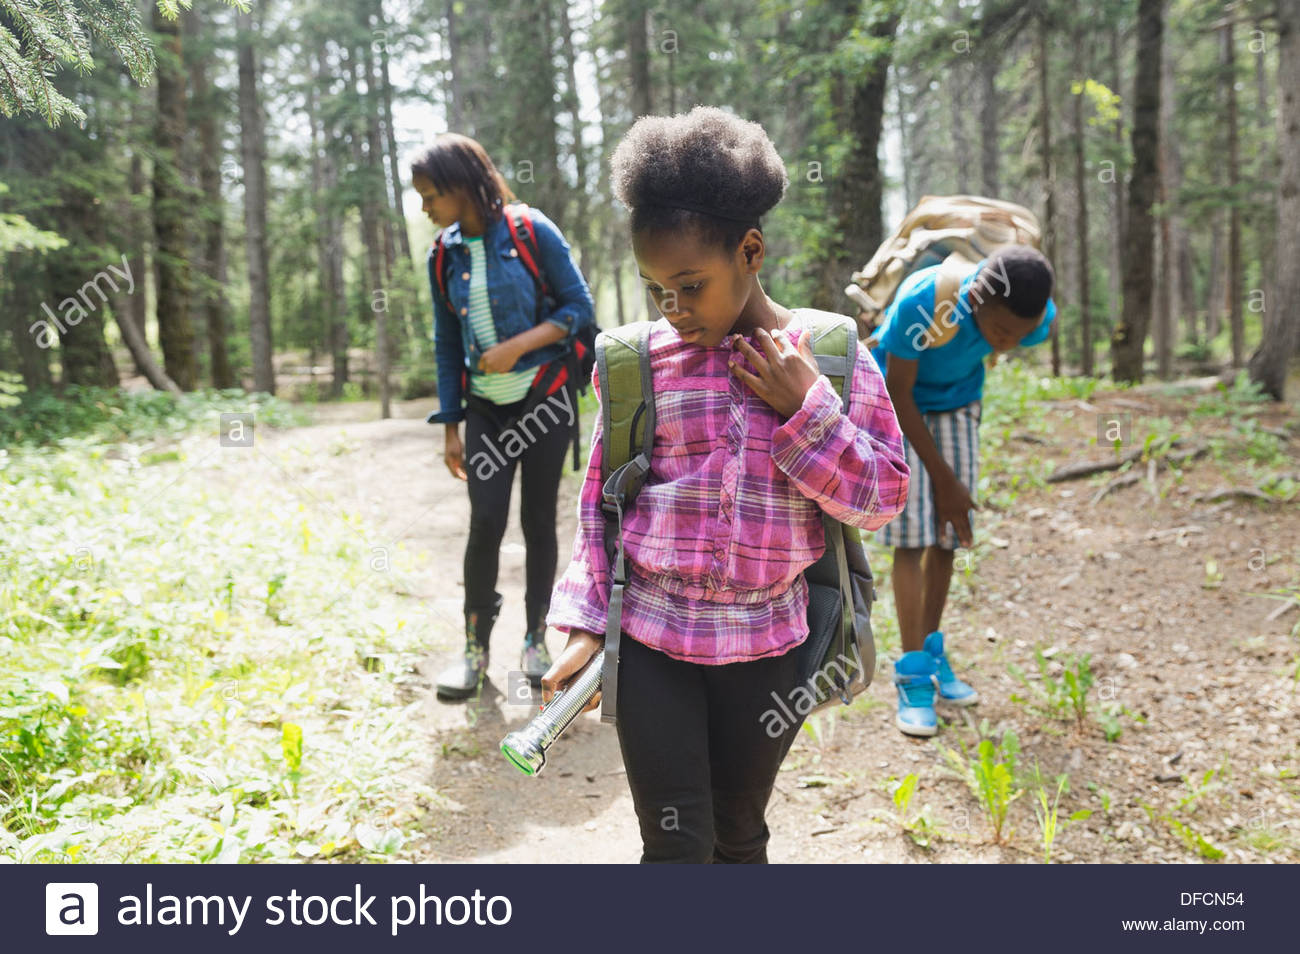 Three siblings exploring forest - Stock Image